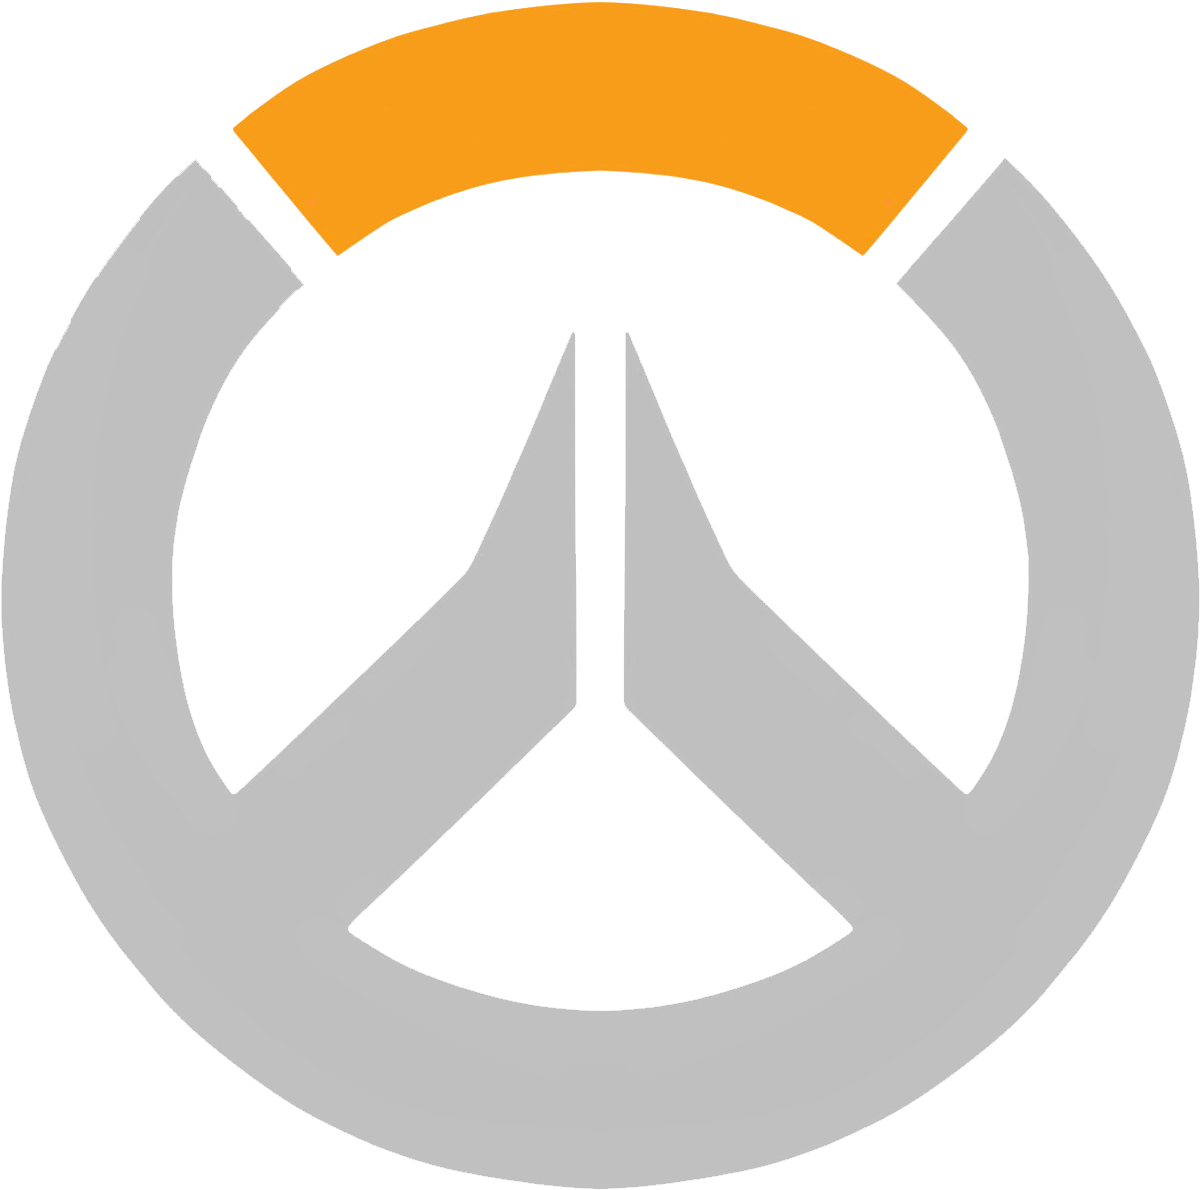 download-for-free-10-png-overwatch-icon-transparent-top-images-at-overwatch-icon-png-1200_1190.png - 104.96 kB